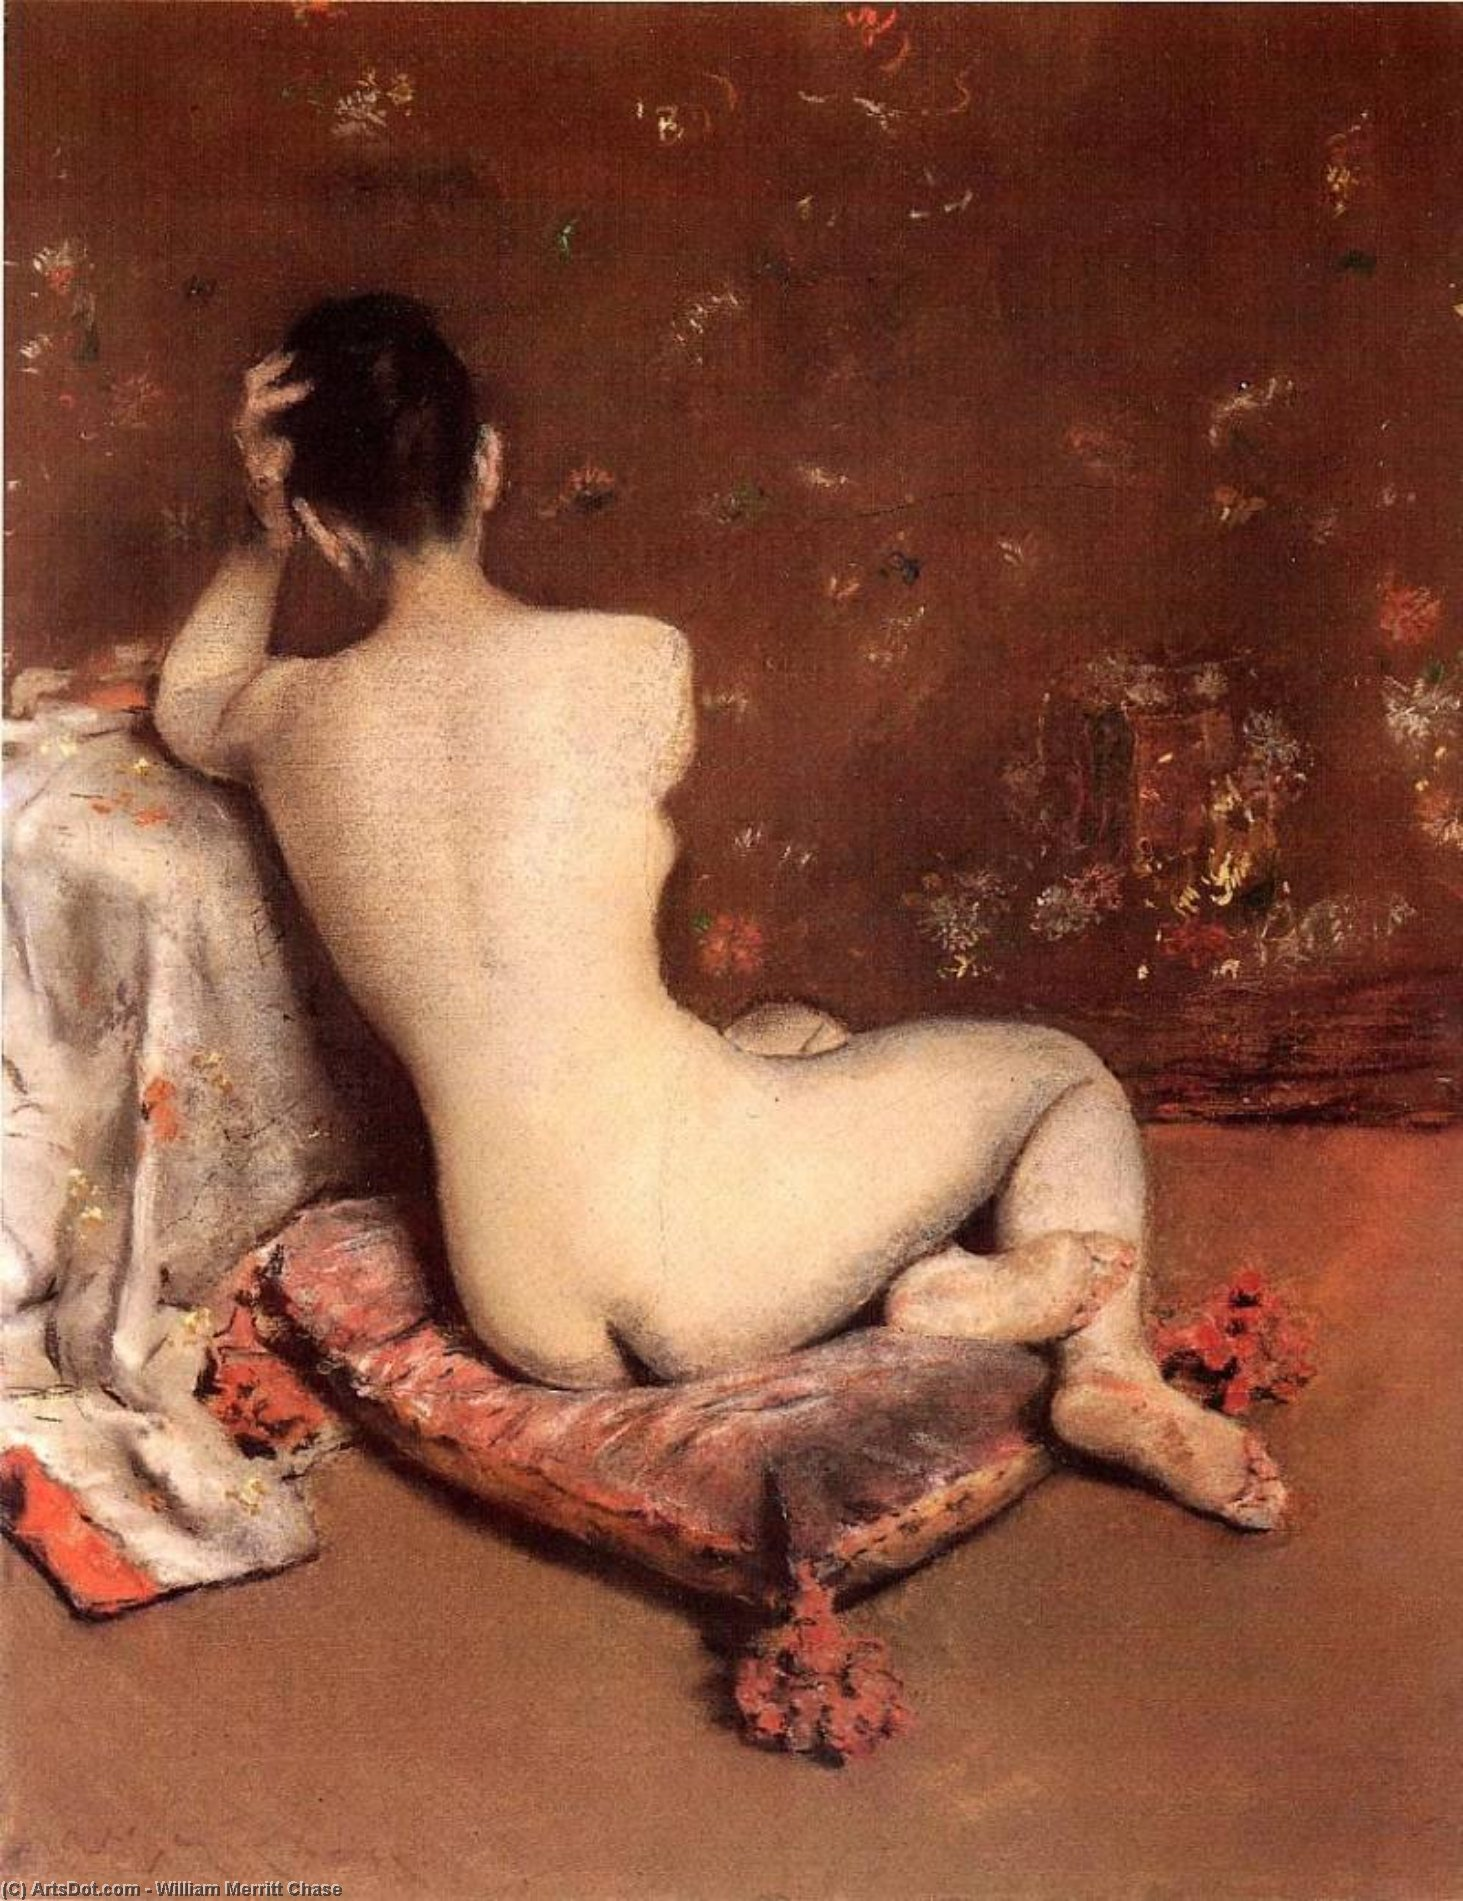 le modèle, Pastel sec de William Merritt Chase (1849-1916, United States)